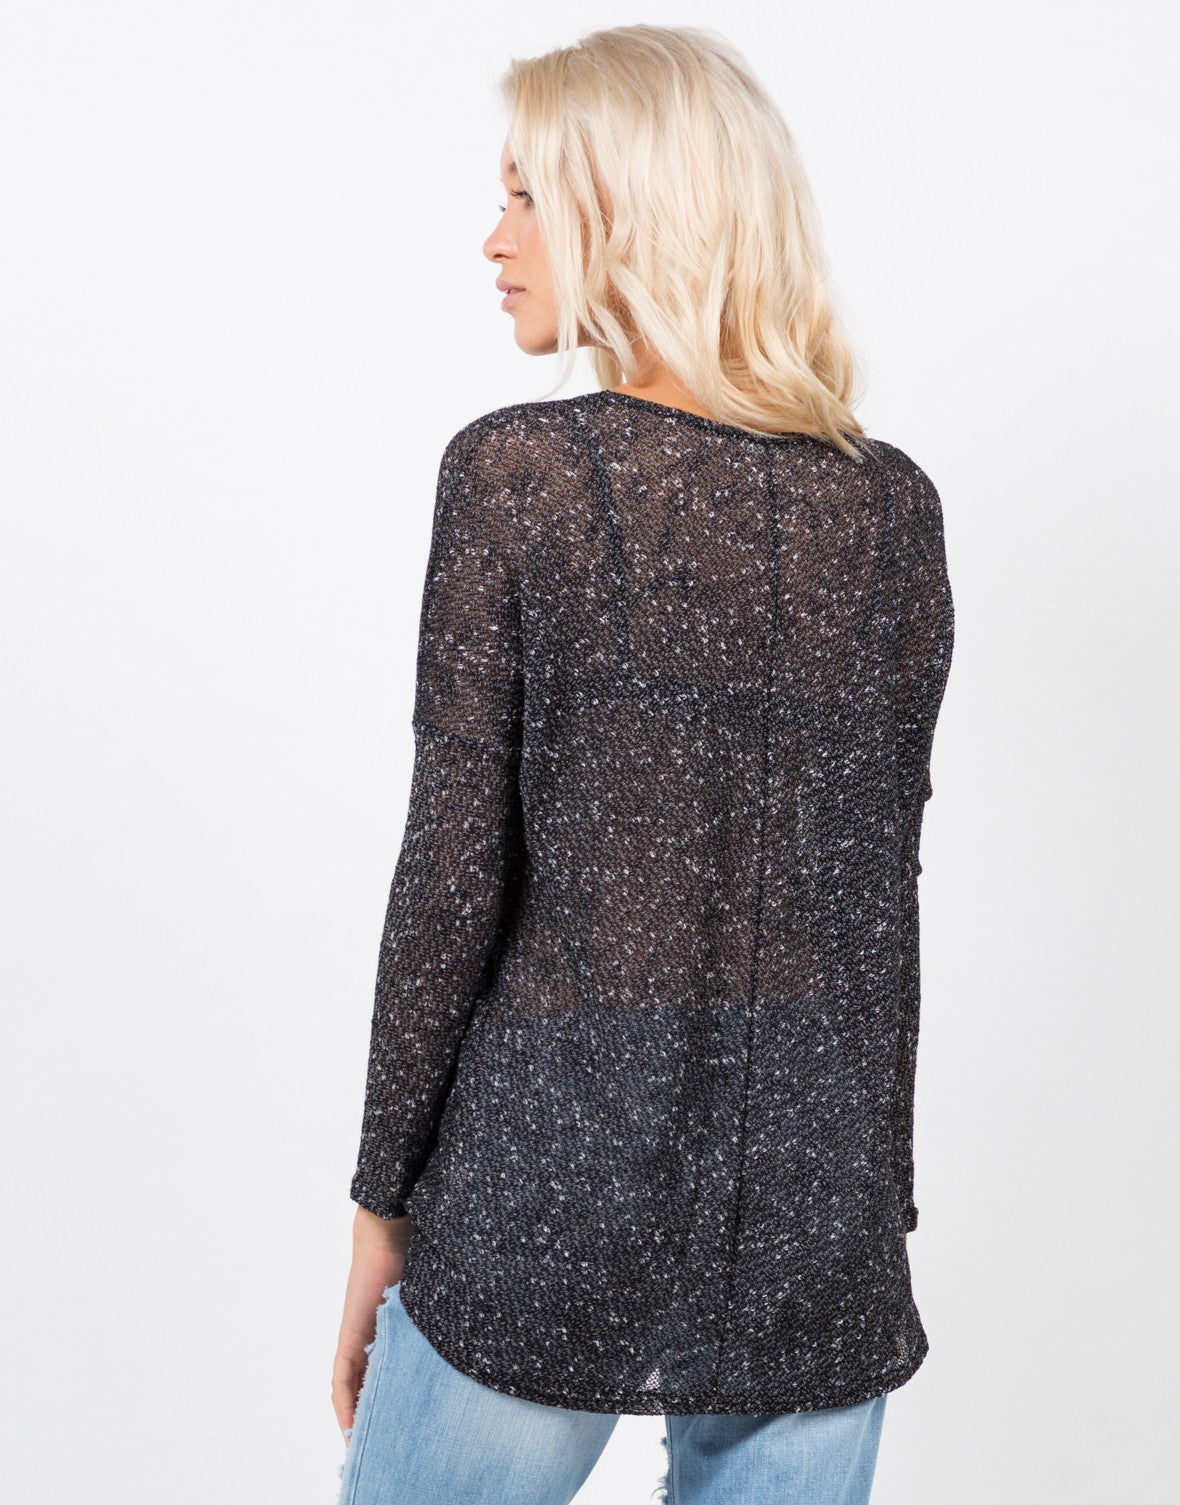 Back View of Light Knit Sweater Top